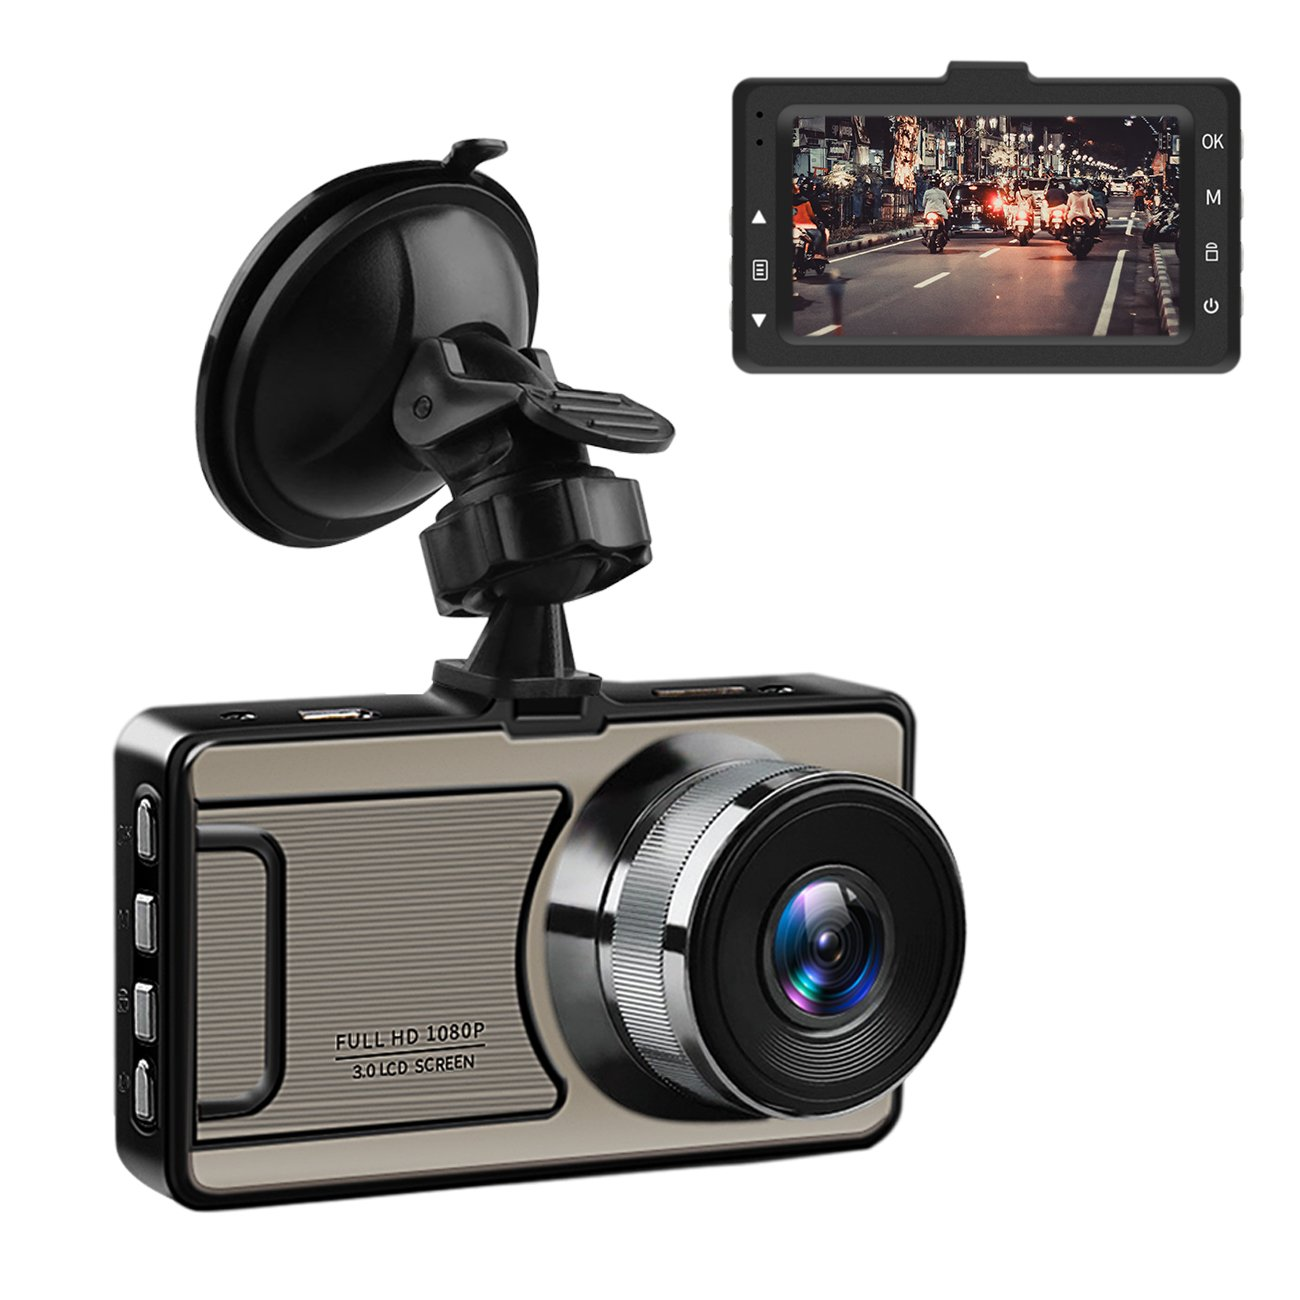 Favoto Dash Cam Full HD 1080P 12 Megapixel Camera 3'' Large LCD Screen 170° Wide Angle Lens Car Camera Recorder with G-Sensor WDR Night Vision Loop Recording Motion Sensor by Favoto (Image #1)